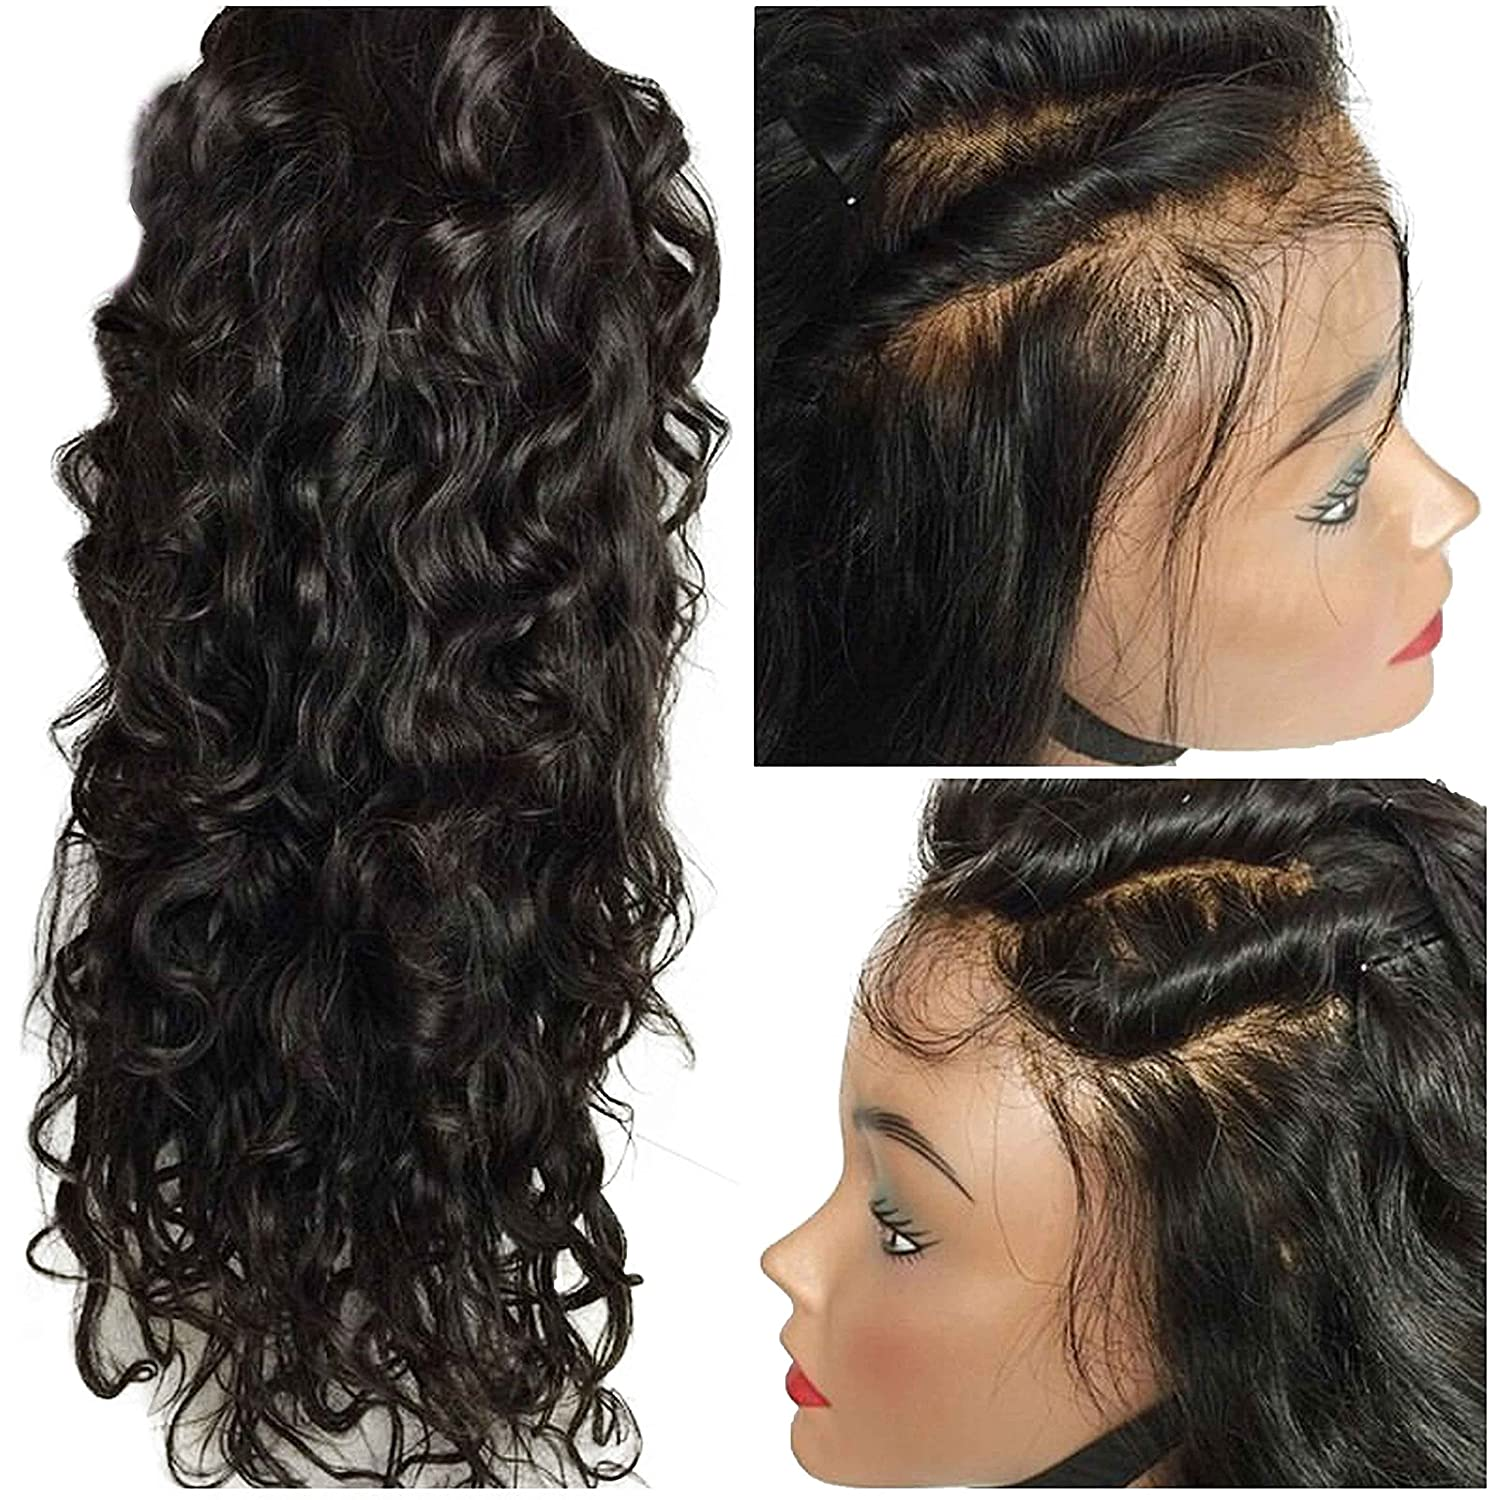 Amazon.com: Elva Hair Glueless Full Lace Wigs & Lace Front Wigs Human Hair for Black Women Virgin Brazilian Body Wave Lace Front Wigs with Baby Hair ...